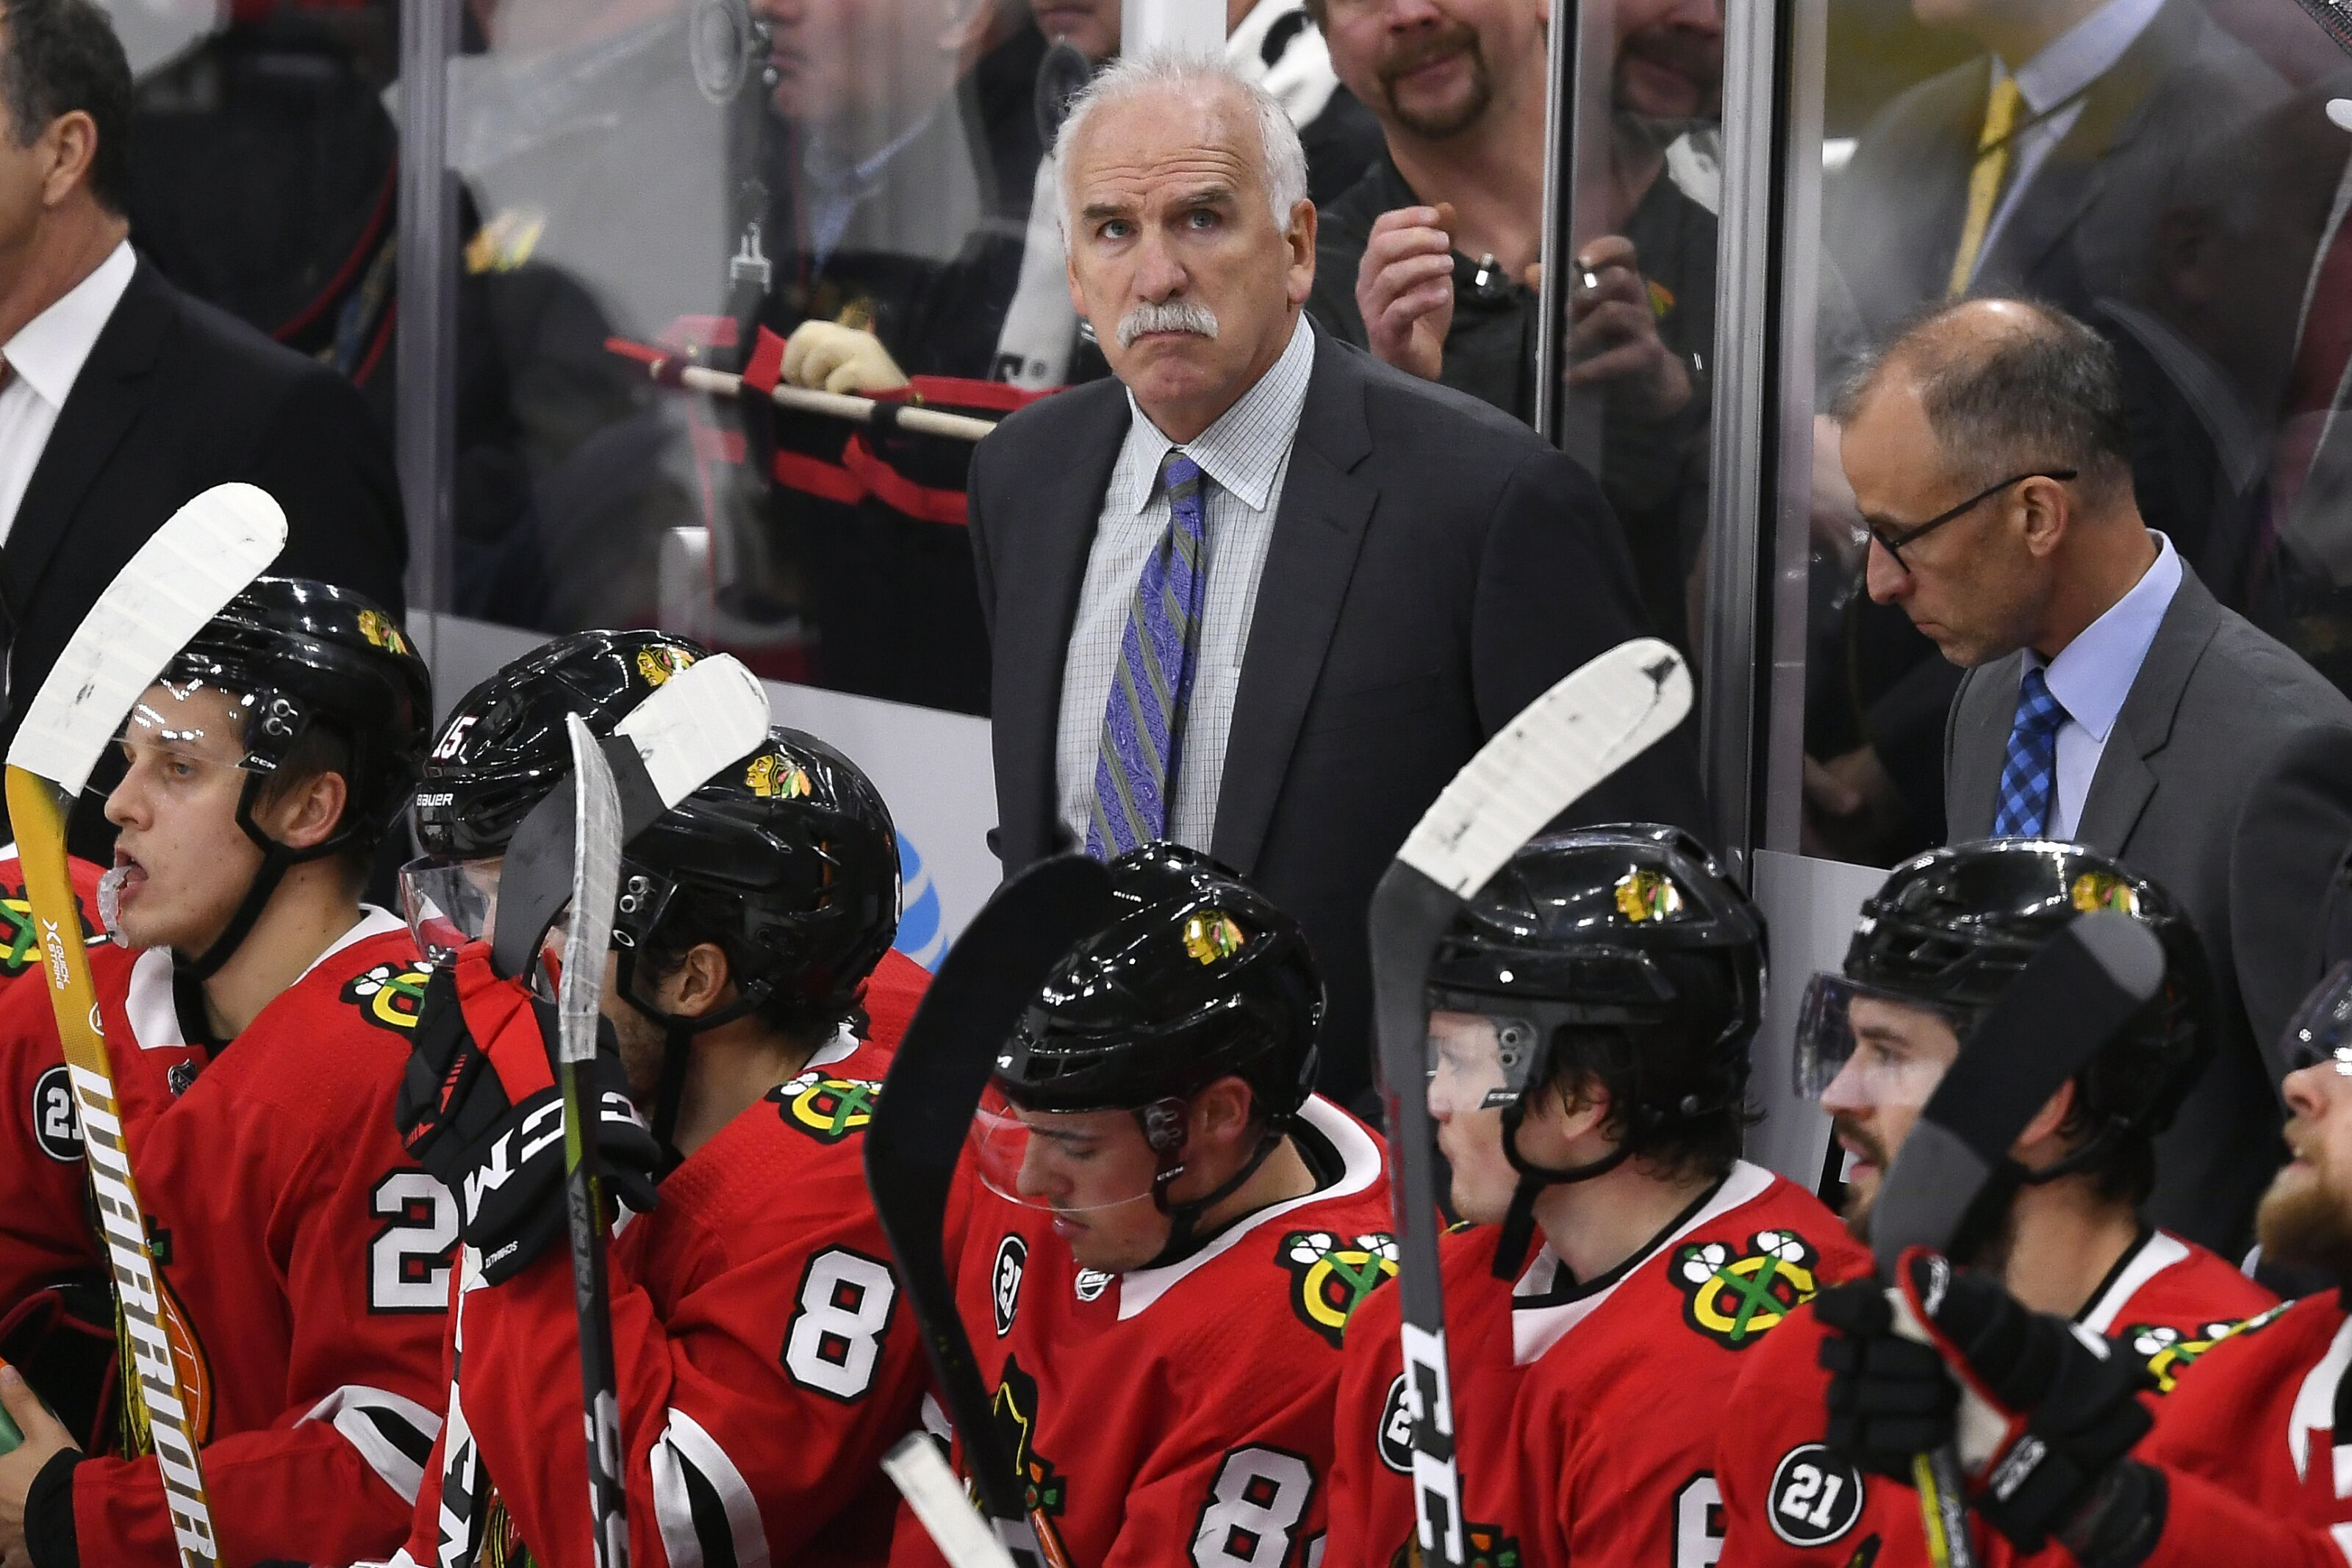 Detroit Red Wings: Could Joel Quenneville be the next head coach?